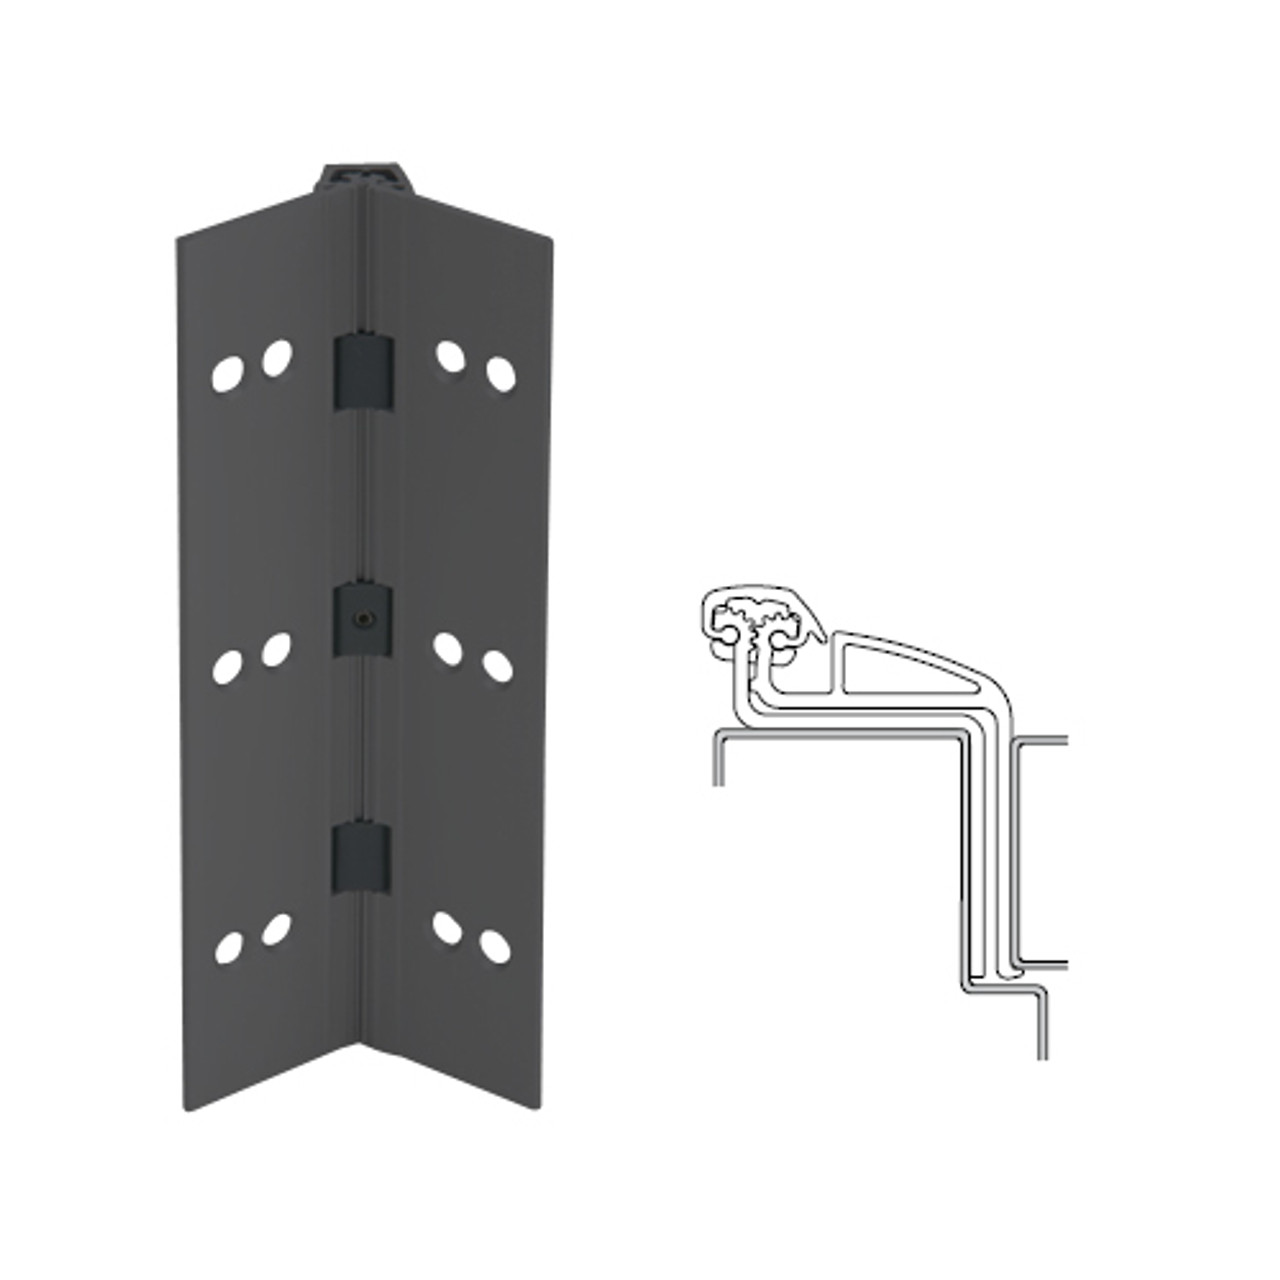 041XY-315AN-95-SECWDWD IVES Full Mortise Continuous Geared Hinges with Security Screws - Hex Pin Drive in Anodized Black